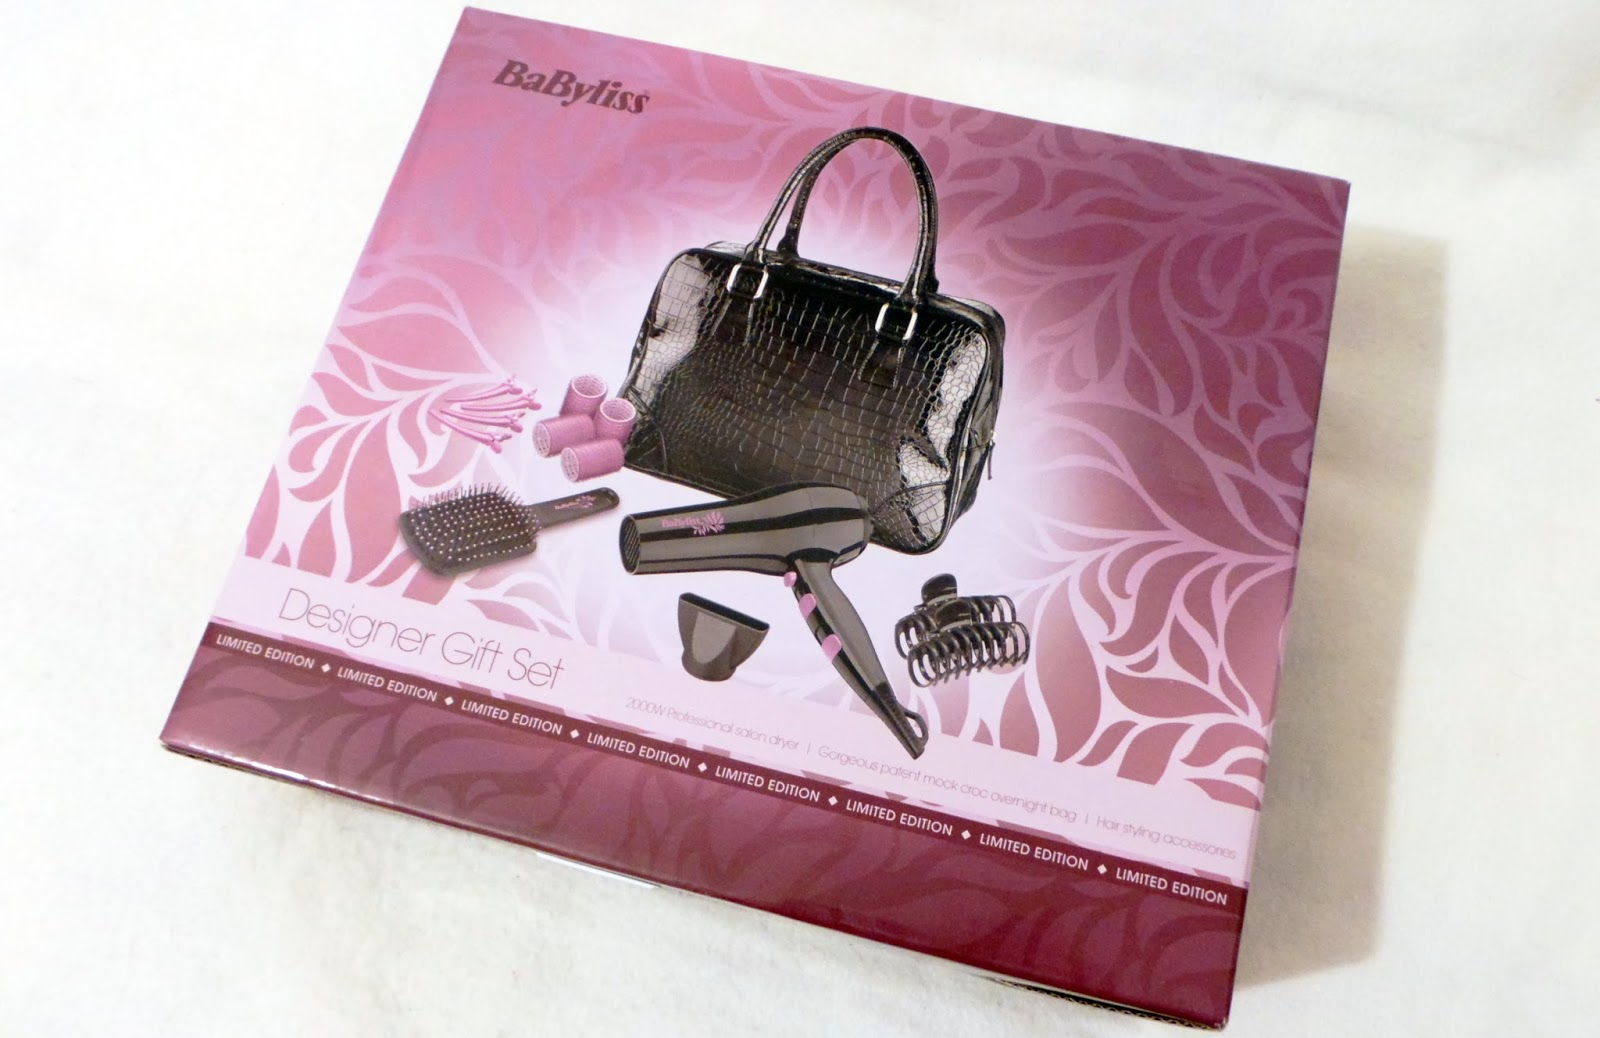 birthday haul blog post - babyliss designer gift set hairdryer and handbag